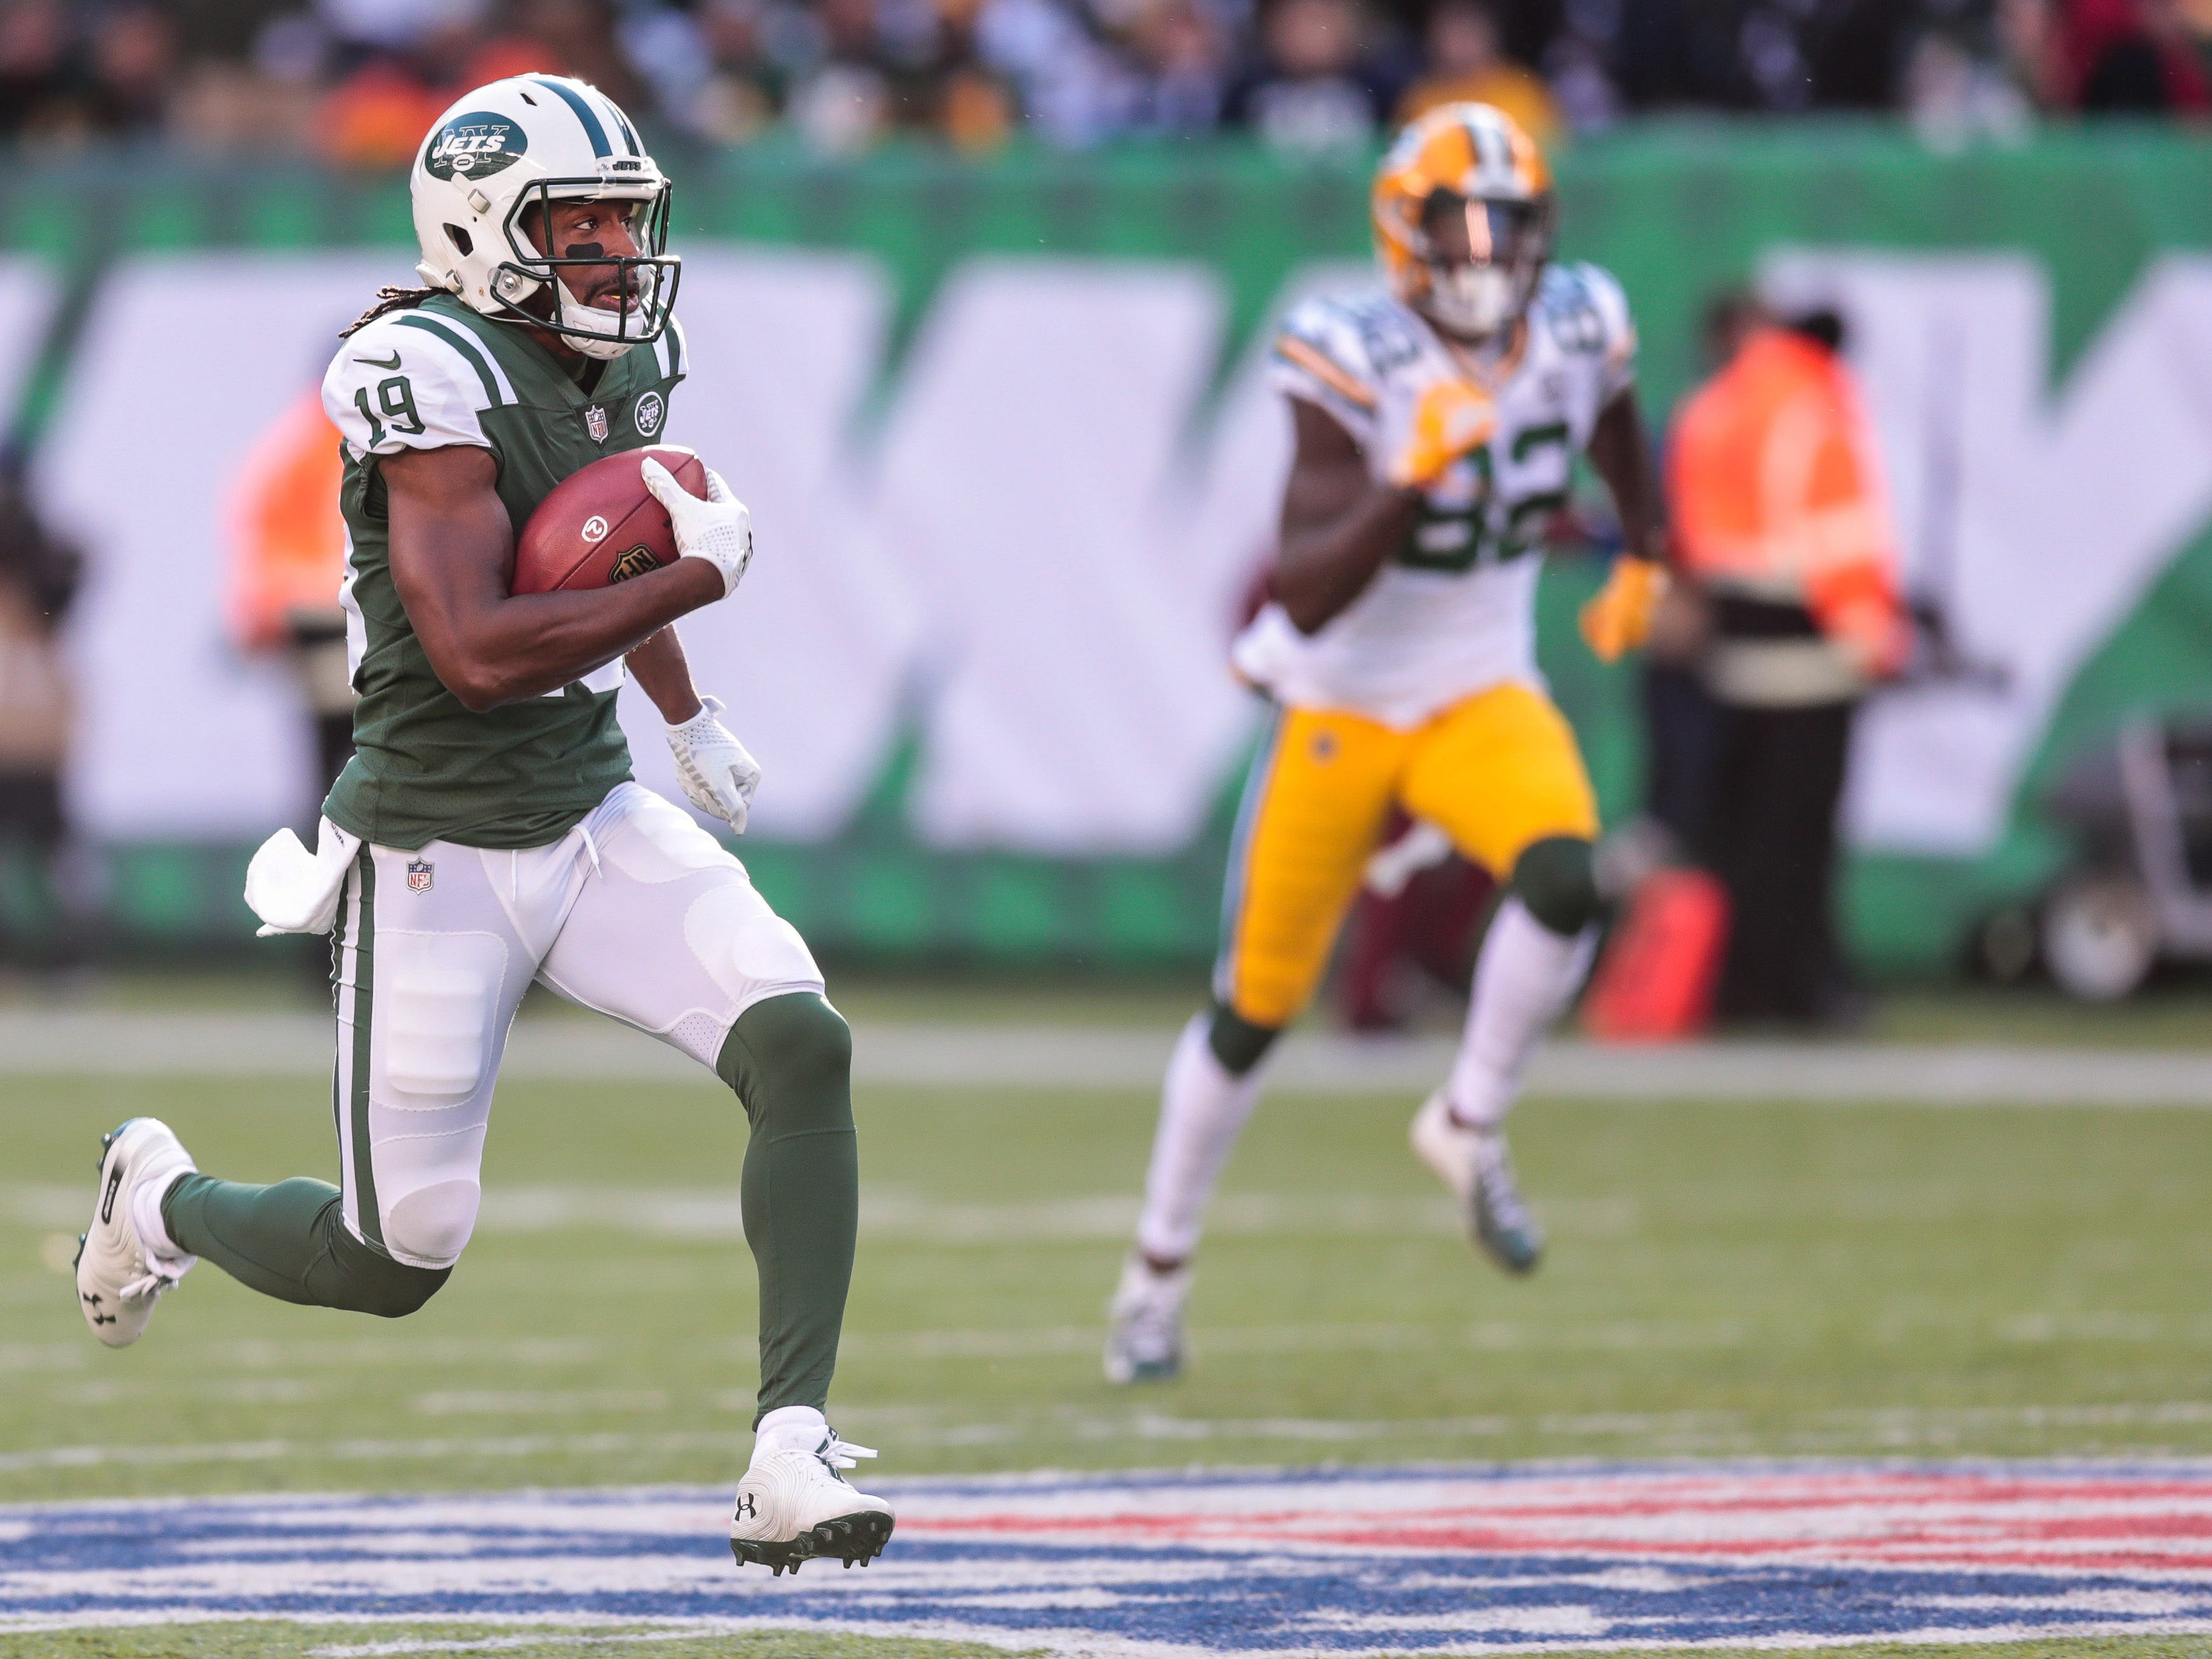 25. Jets (27): Strange but true — the J-E-T-S had as many Pro Bowlers (3) as the rest of the AFC East combined. Yes, kickers and return men count.